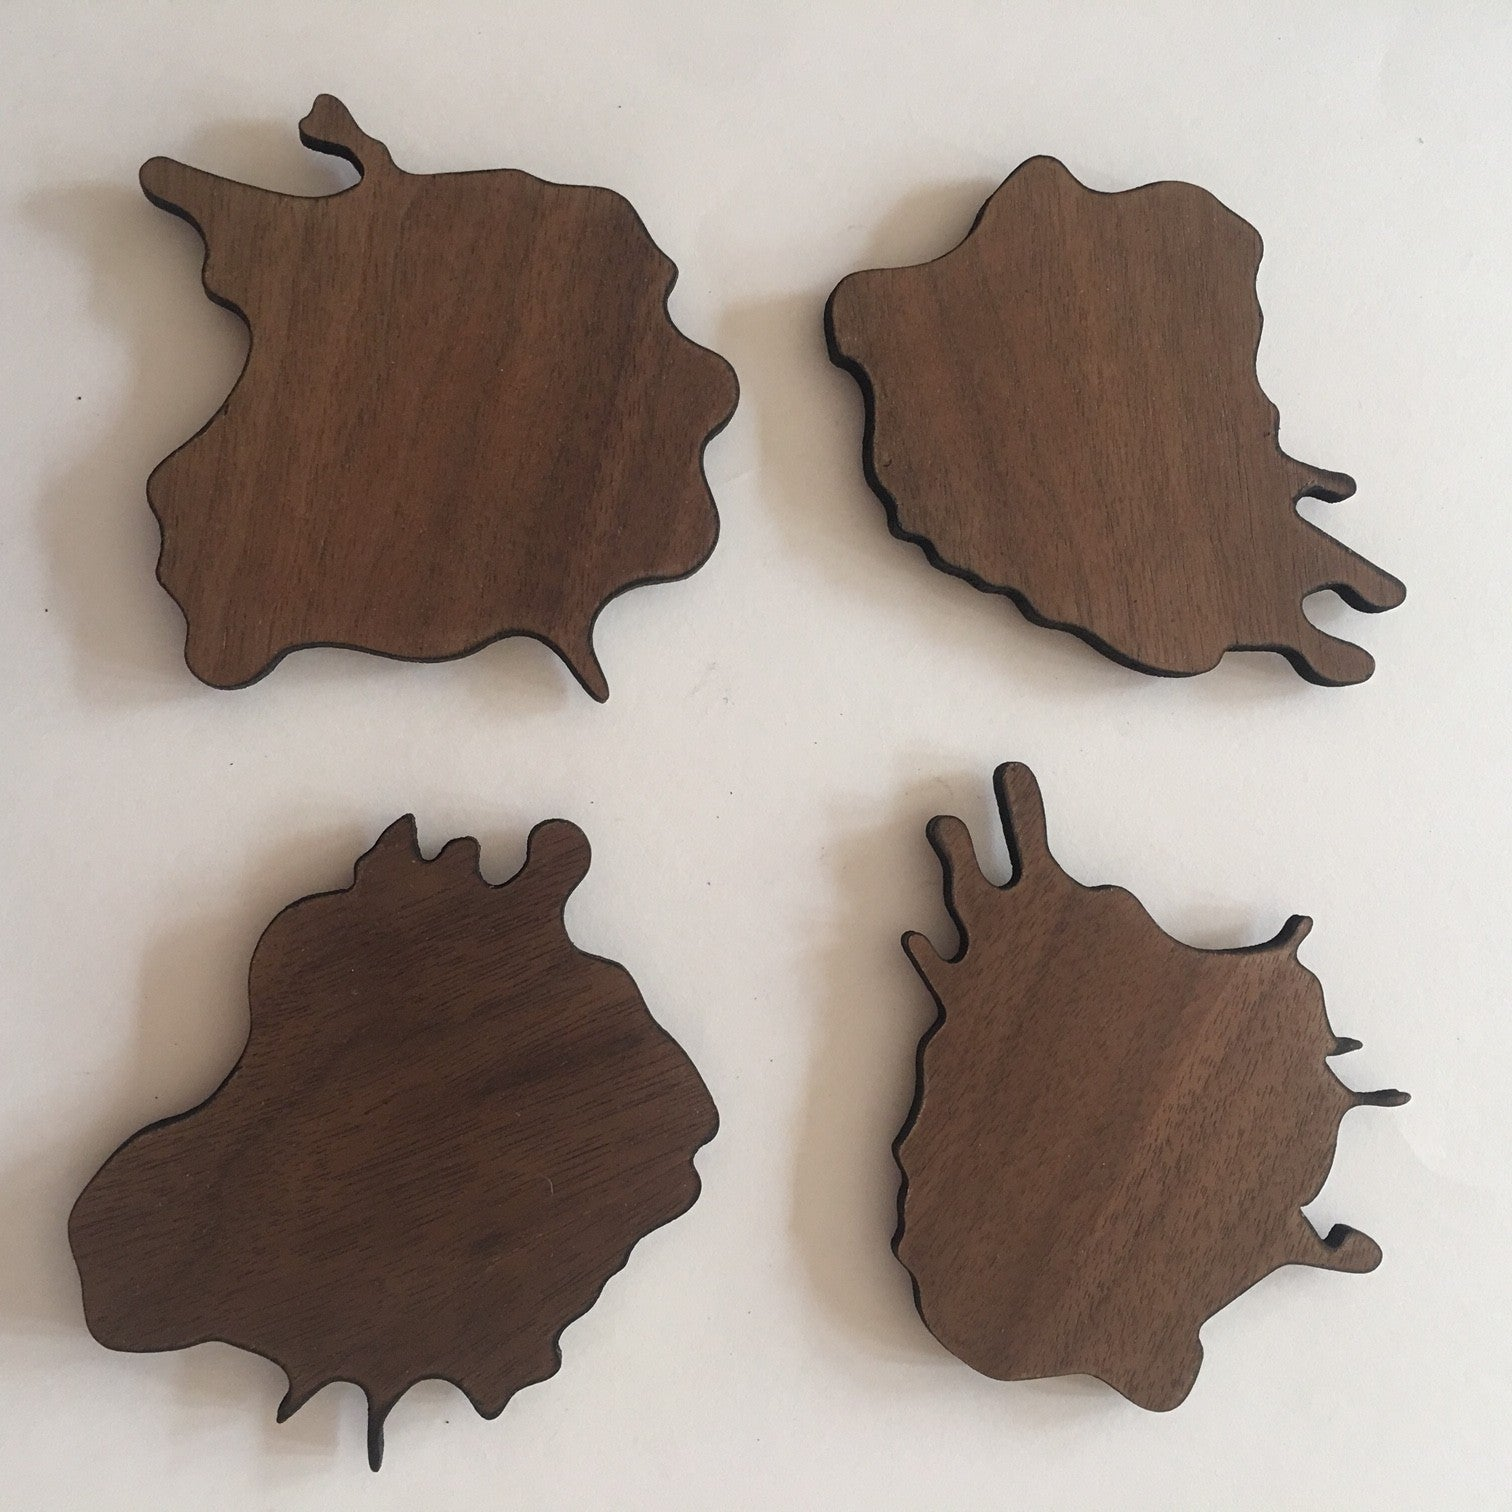 wood water spill coaster set of 4